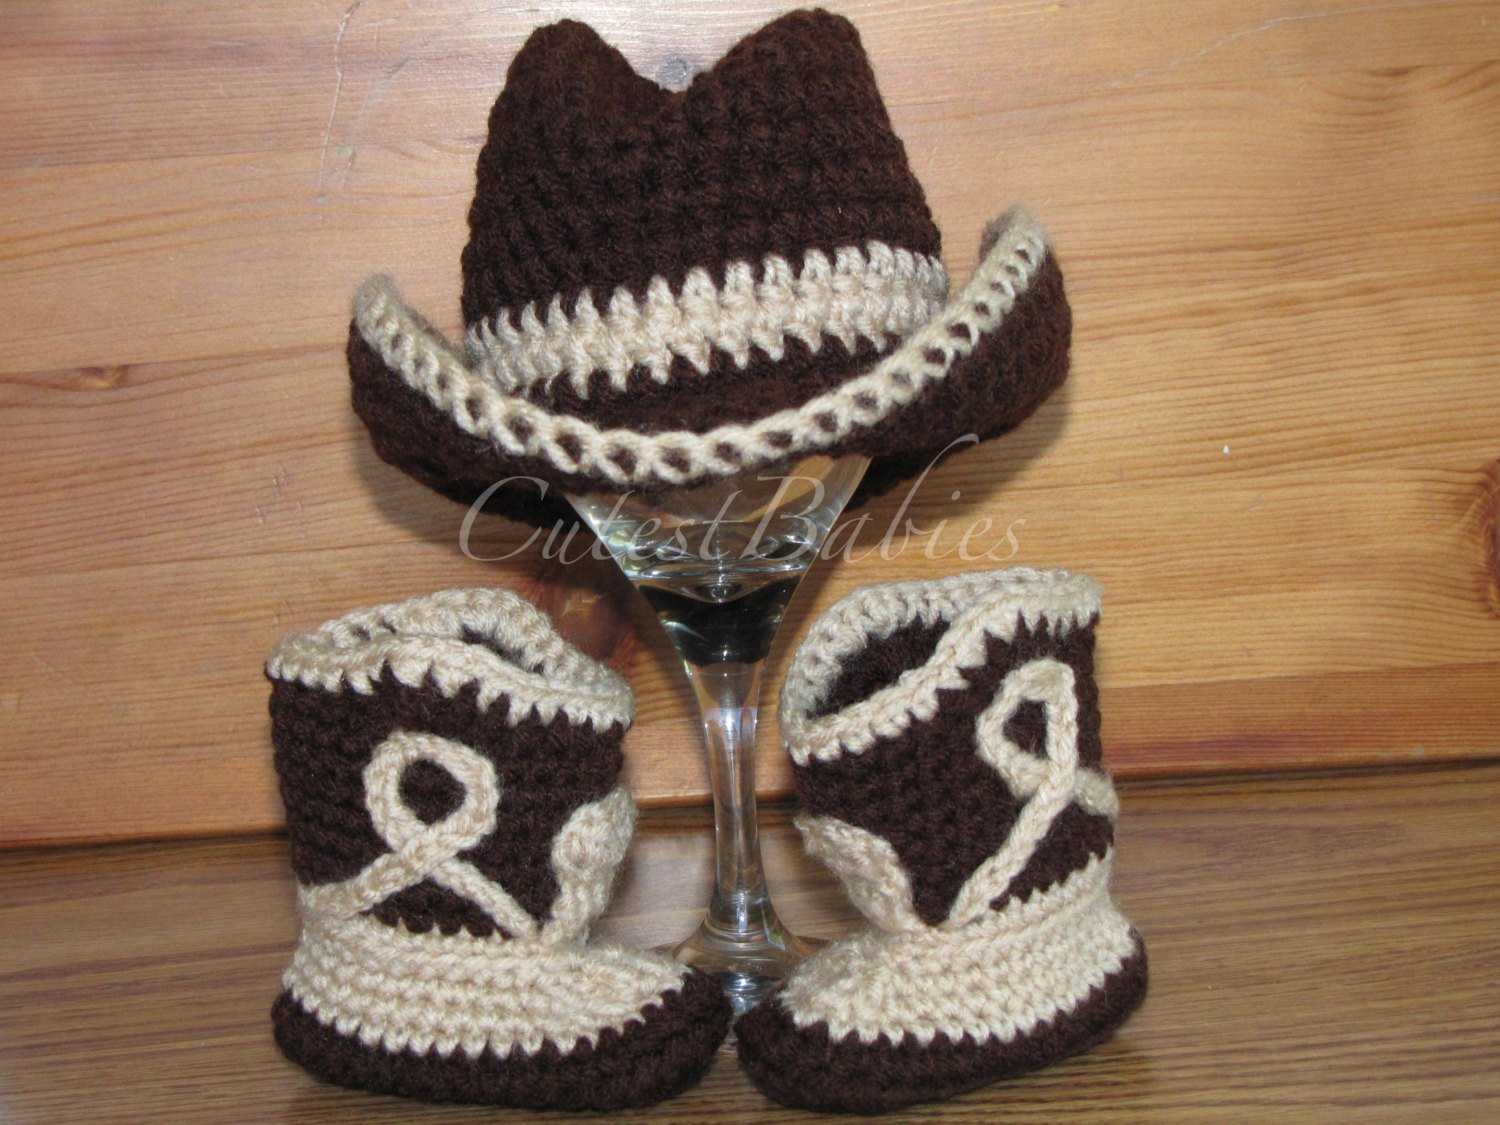 Crochet Cowboy Boots Lovely Newborn Baby Crochet Cowboy Set Hat & Boots Prop Of Marvelous 49 Pictures Crochet Cowboy Boots